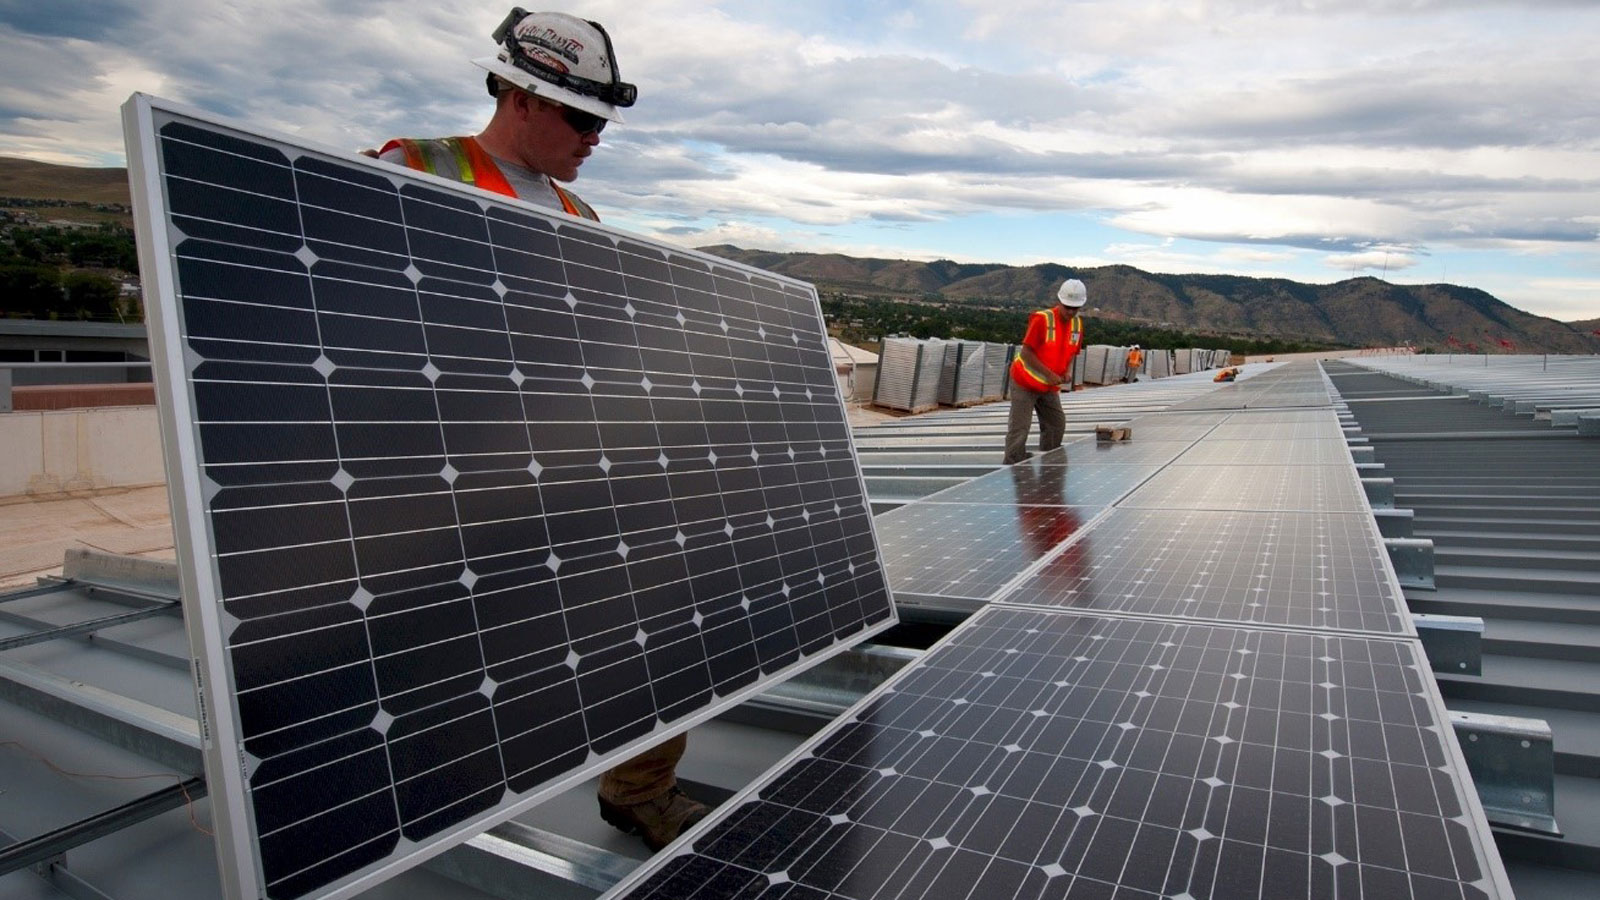 "<h3>SOLAR ENERGY</h3><h5>America produces over <span class=""slideshowHighlight"">40 times more solar power</span> than it did in 2009, enough to power more than 9 million average American homes.</h5>"